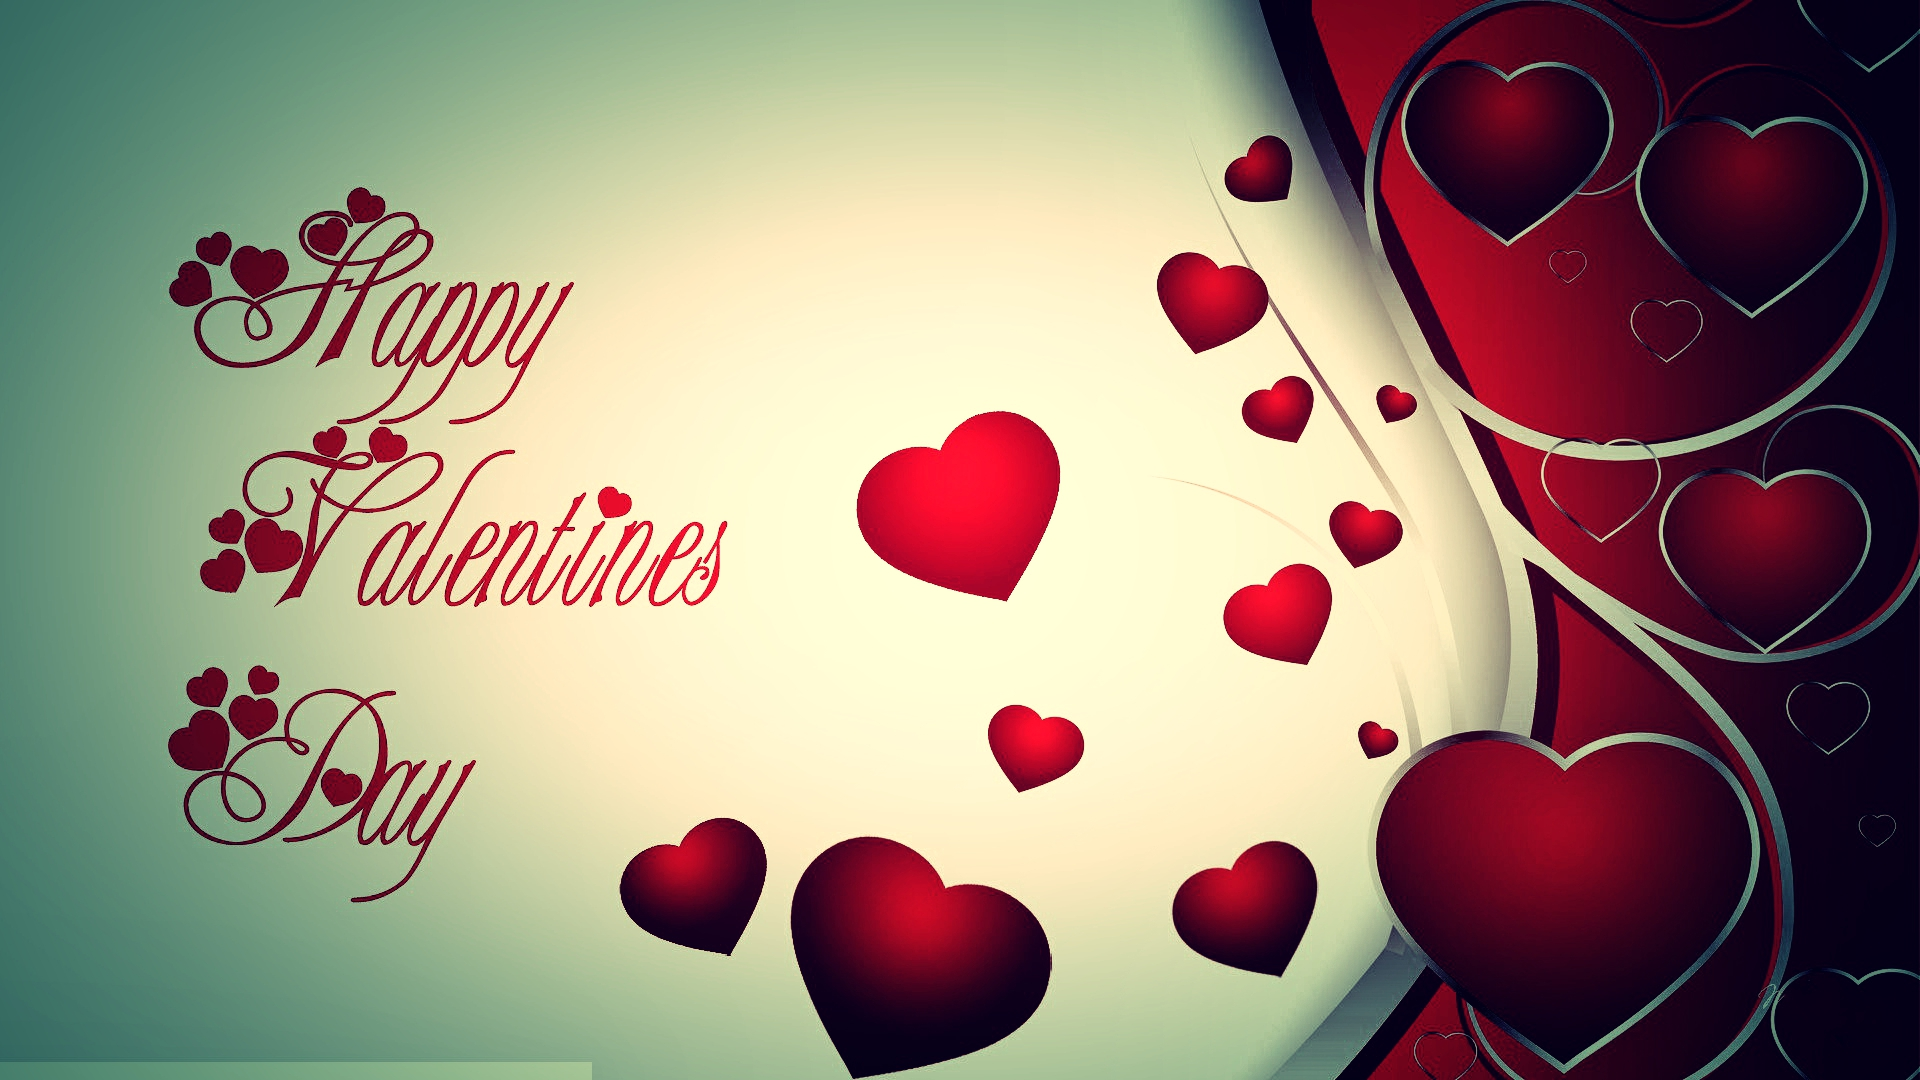 Cute-Valentines-Day-Wallpapers | Hd Wallpapers